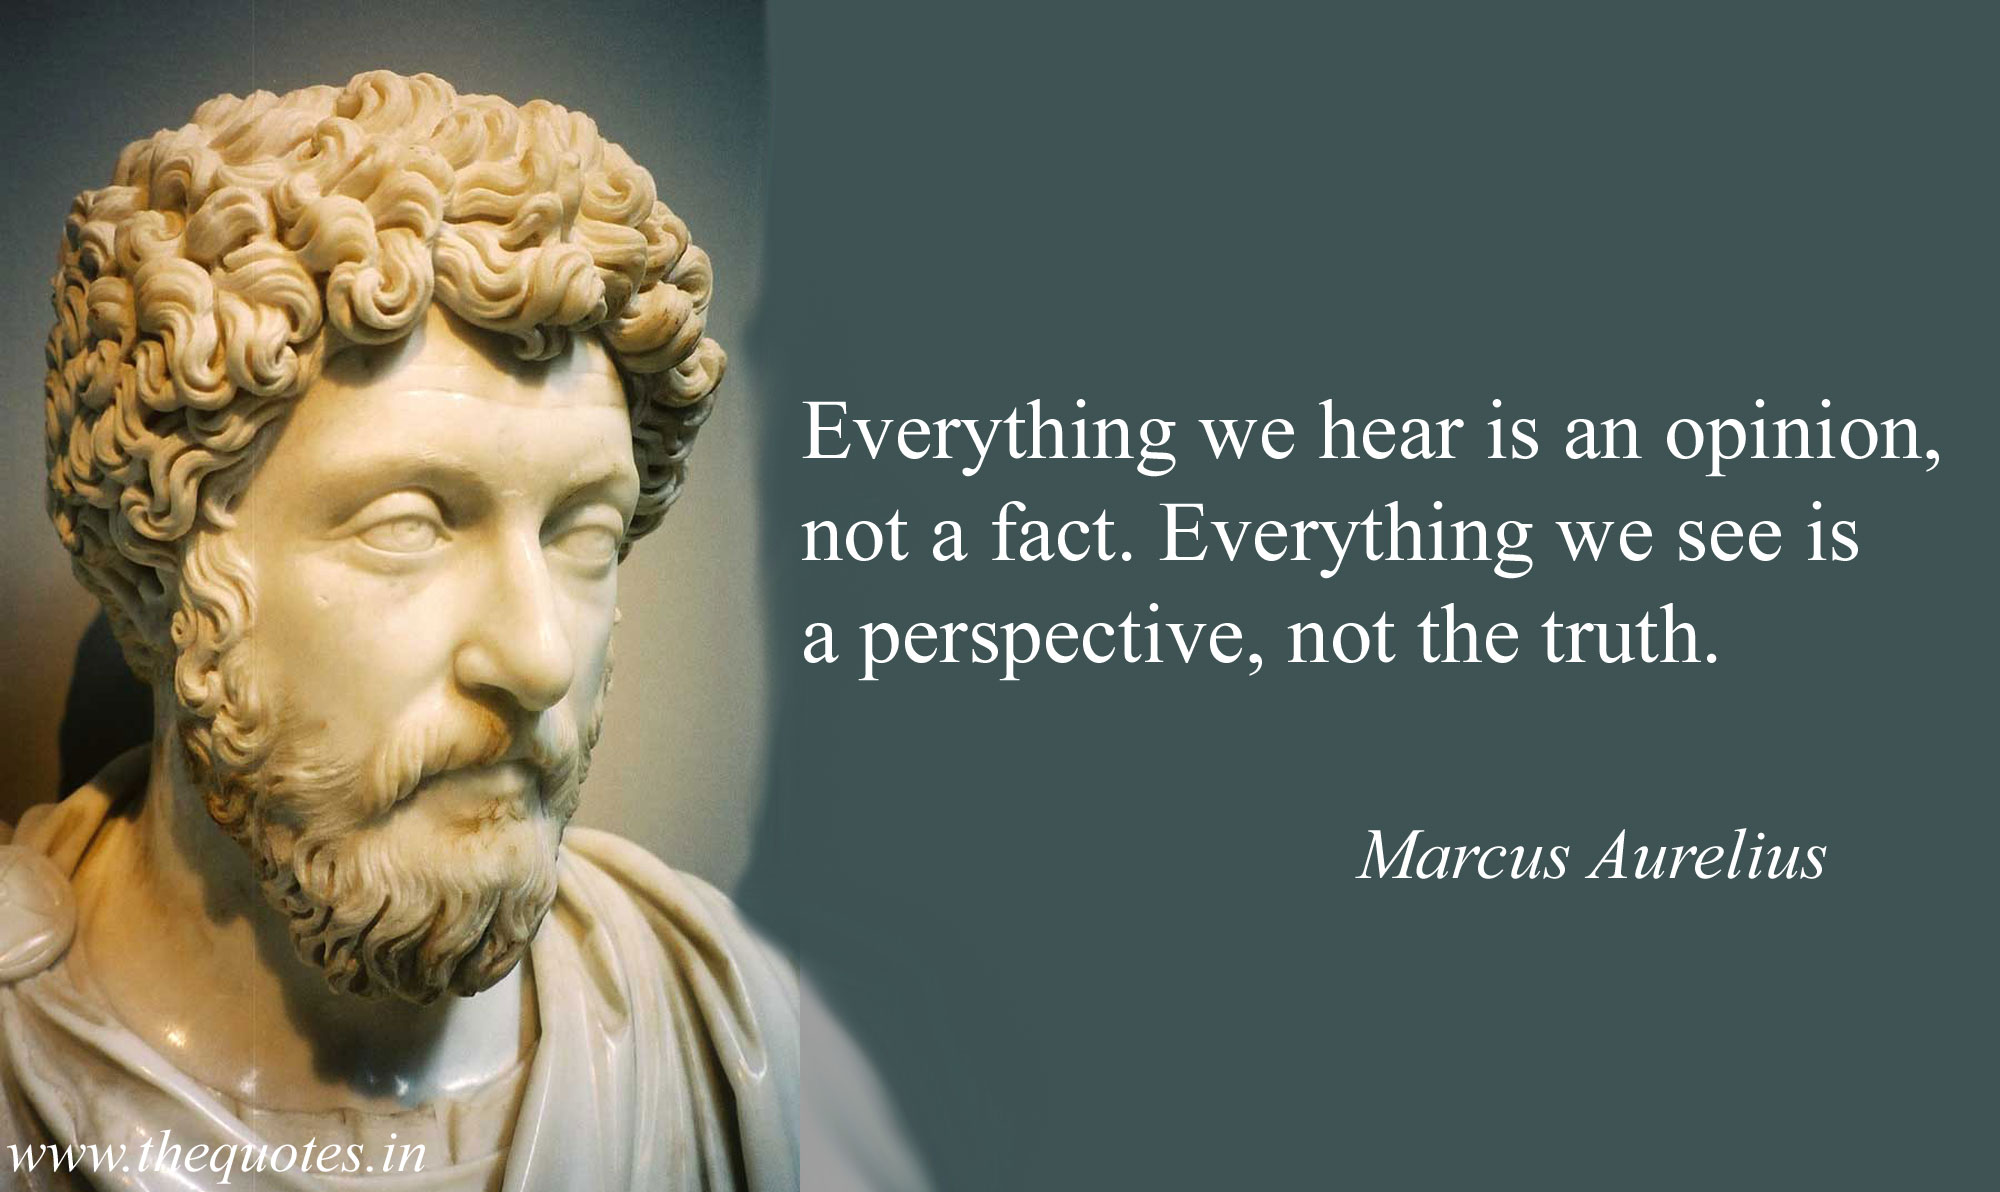 A Practical Guide To Implementing The Thoughts Of Marcus Aurelius